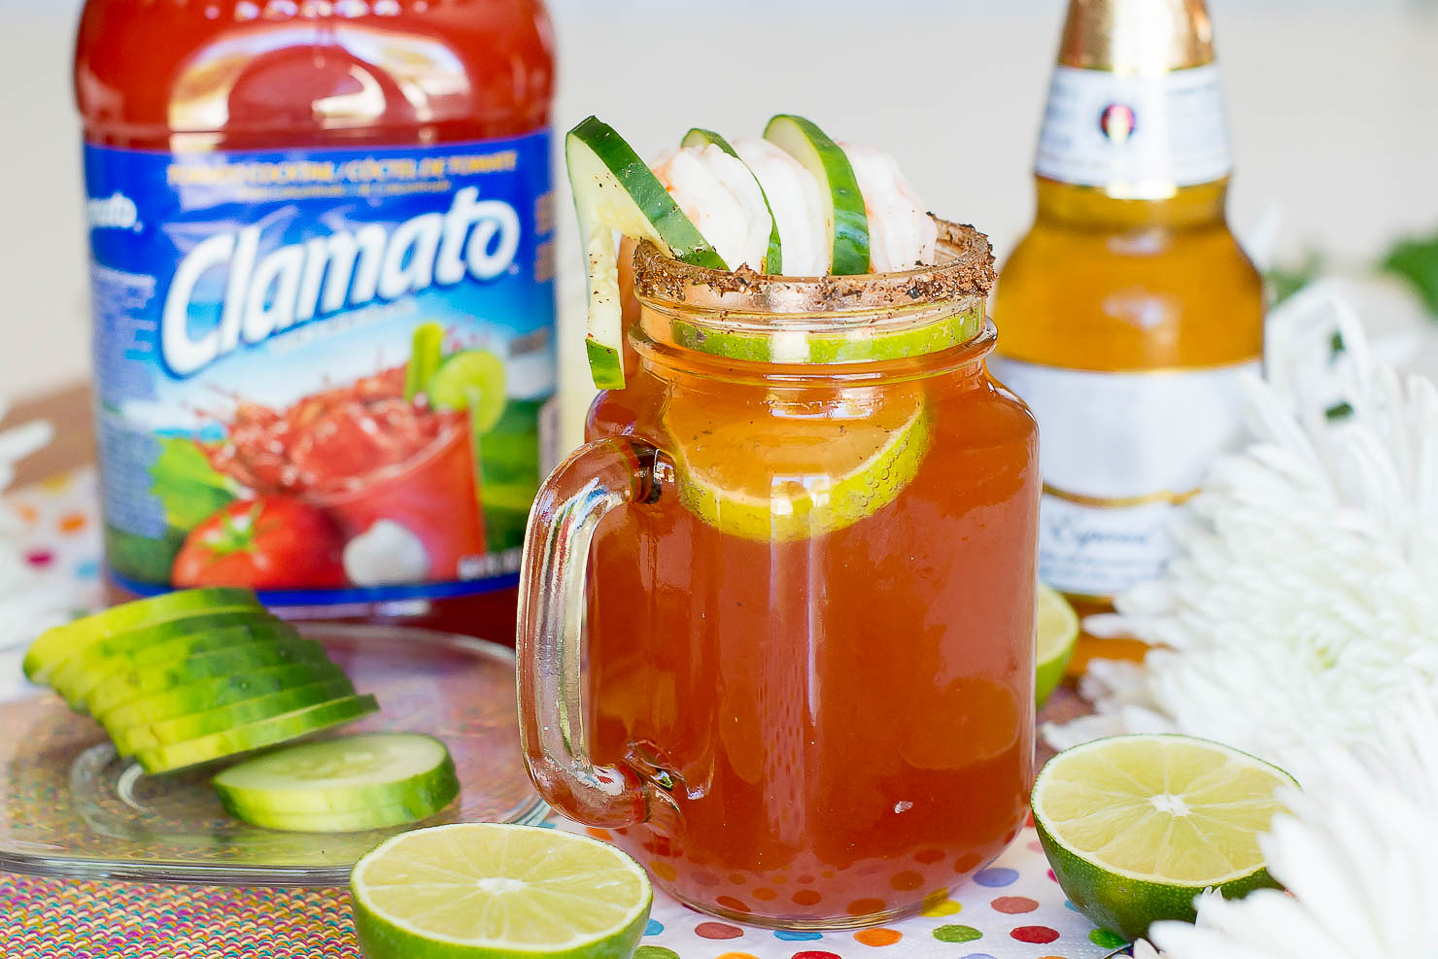 authentic mexican ceviche michelada, clamato michelada recipe, modelo cerveza